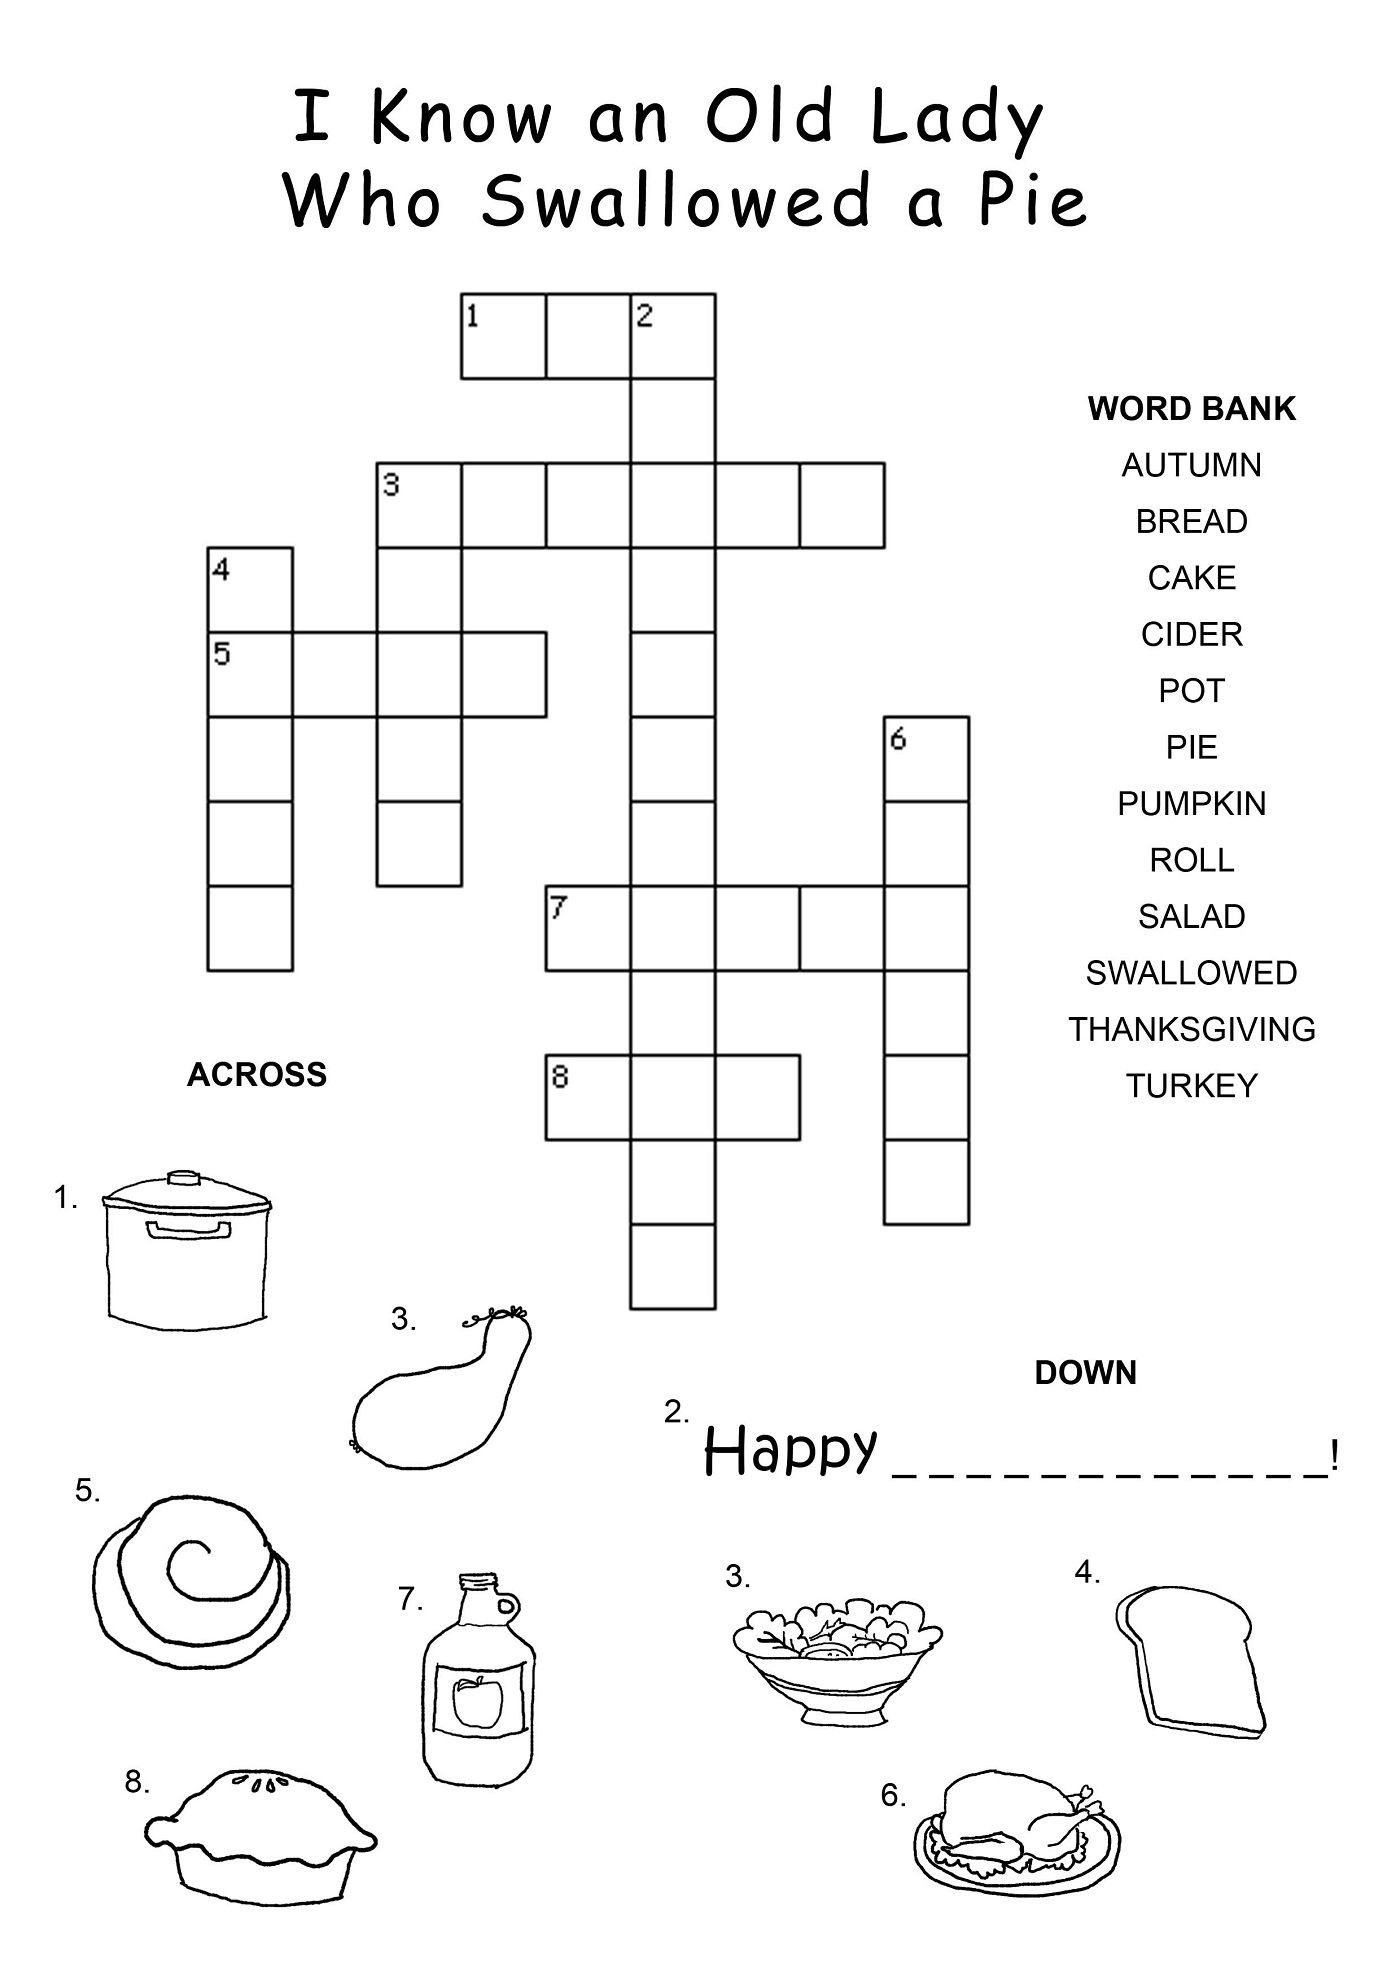 Very Easy Crossword Puzzles Fun | Kiddo Shelter | Educative Puzzle - Printable Crossword Puzzles For Kids With Word Bank